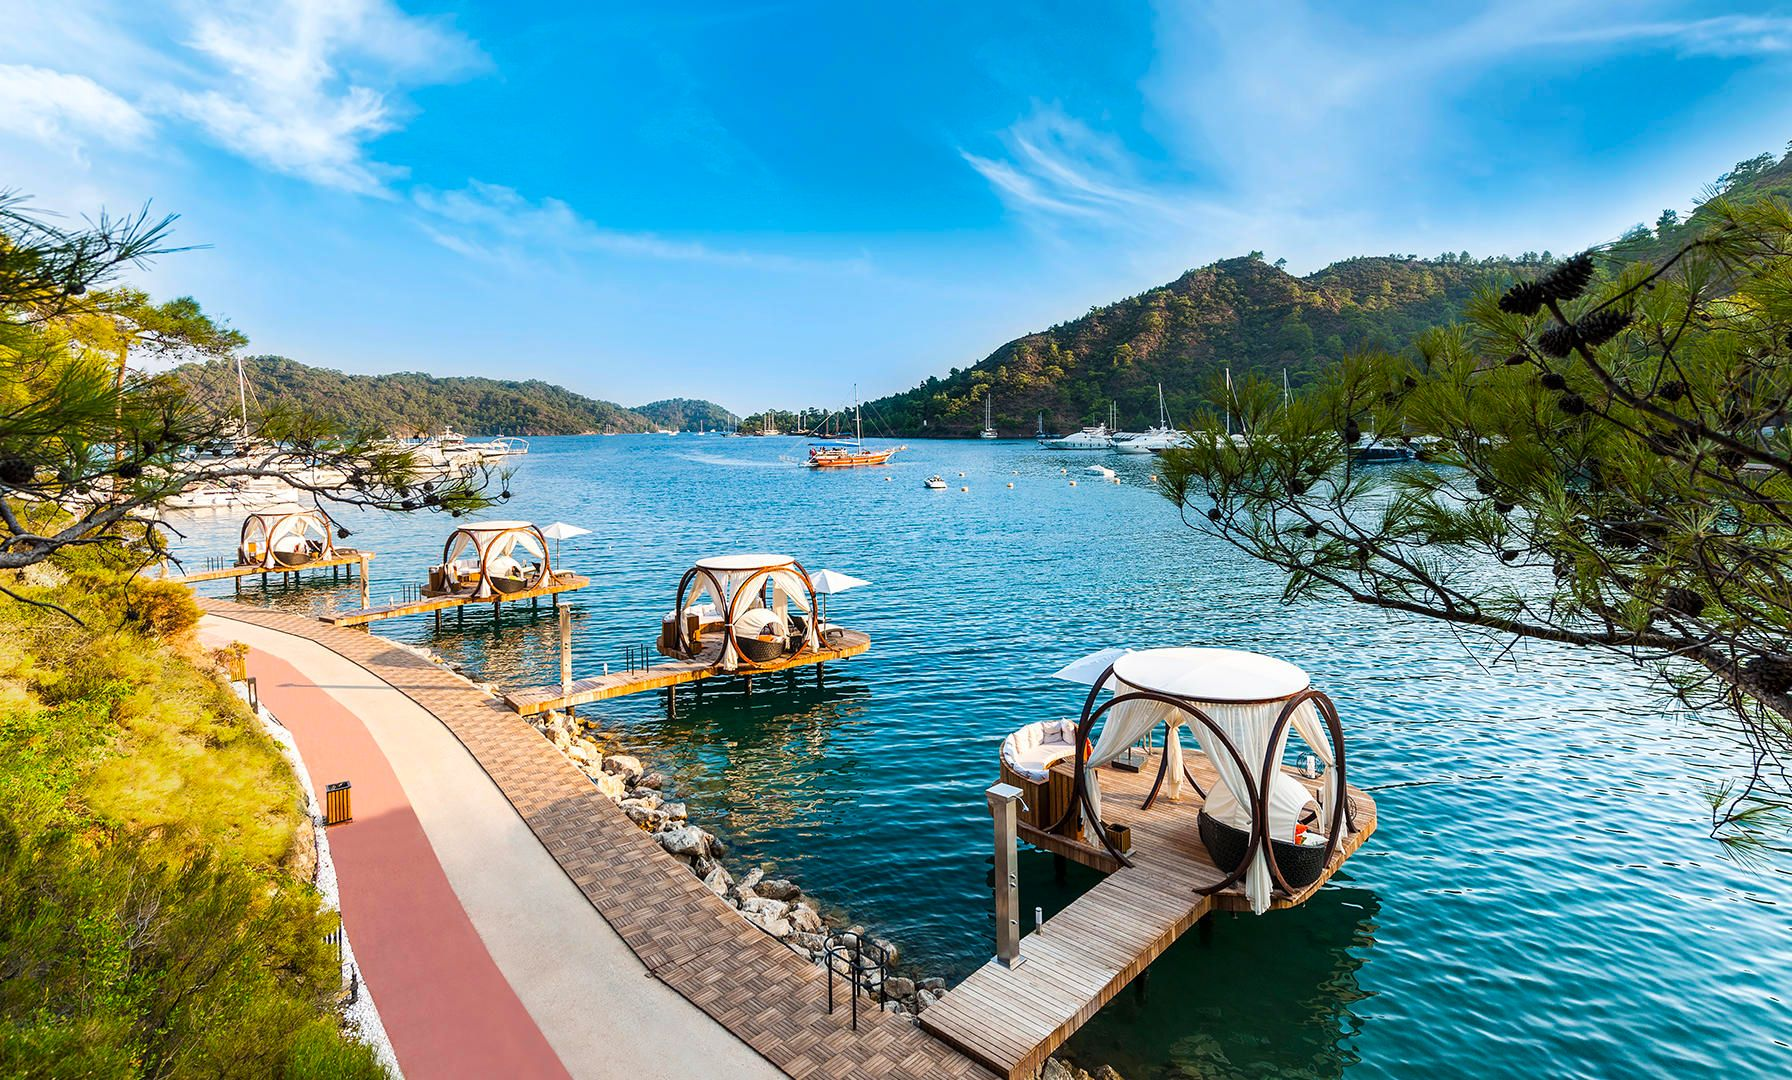 Gocek Is A Small Town In Fethiye District In Mugla Province